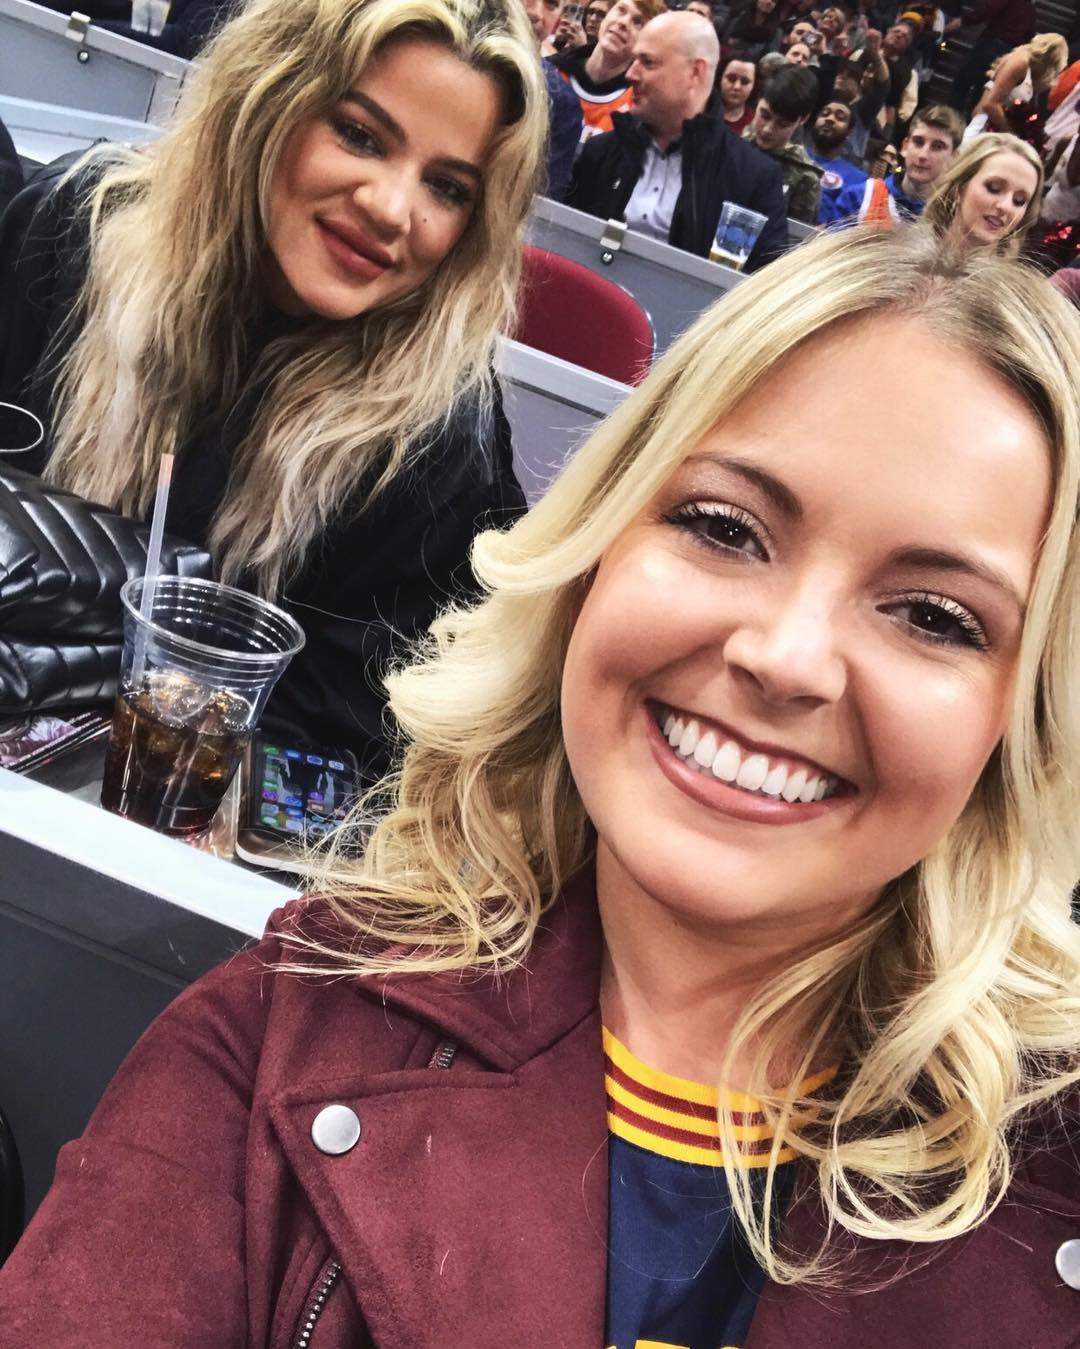 PHOTOS | January 18, 2018 – Khloe Kardashian at Cavs game in Cleveland